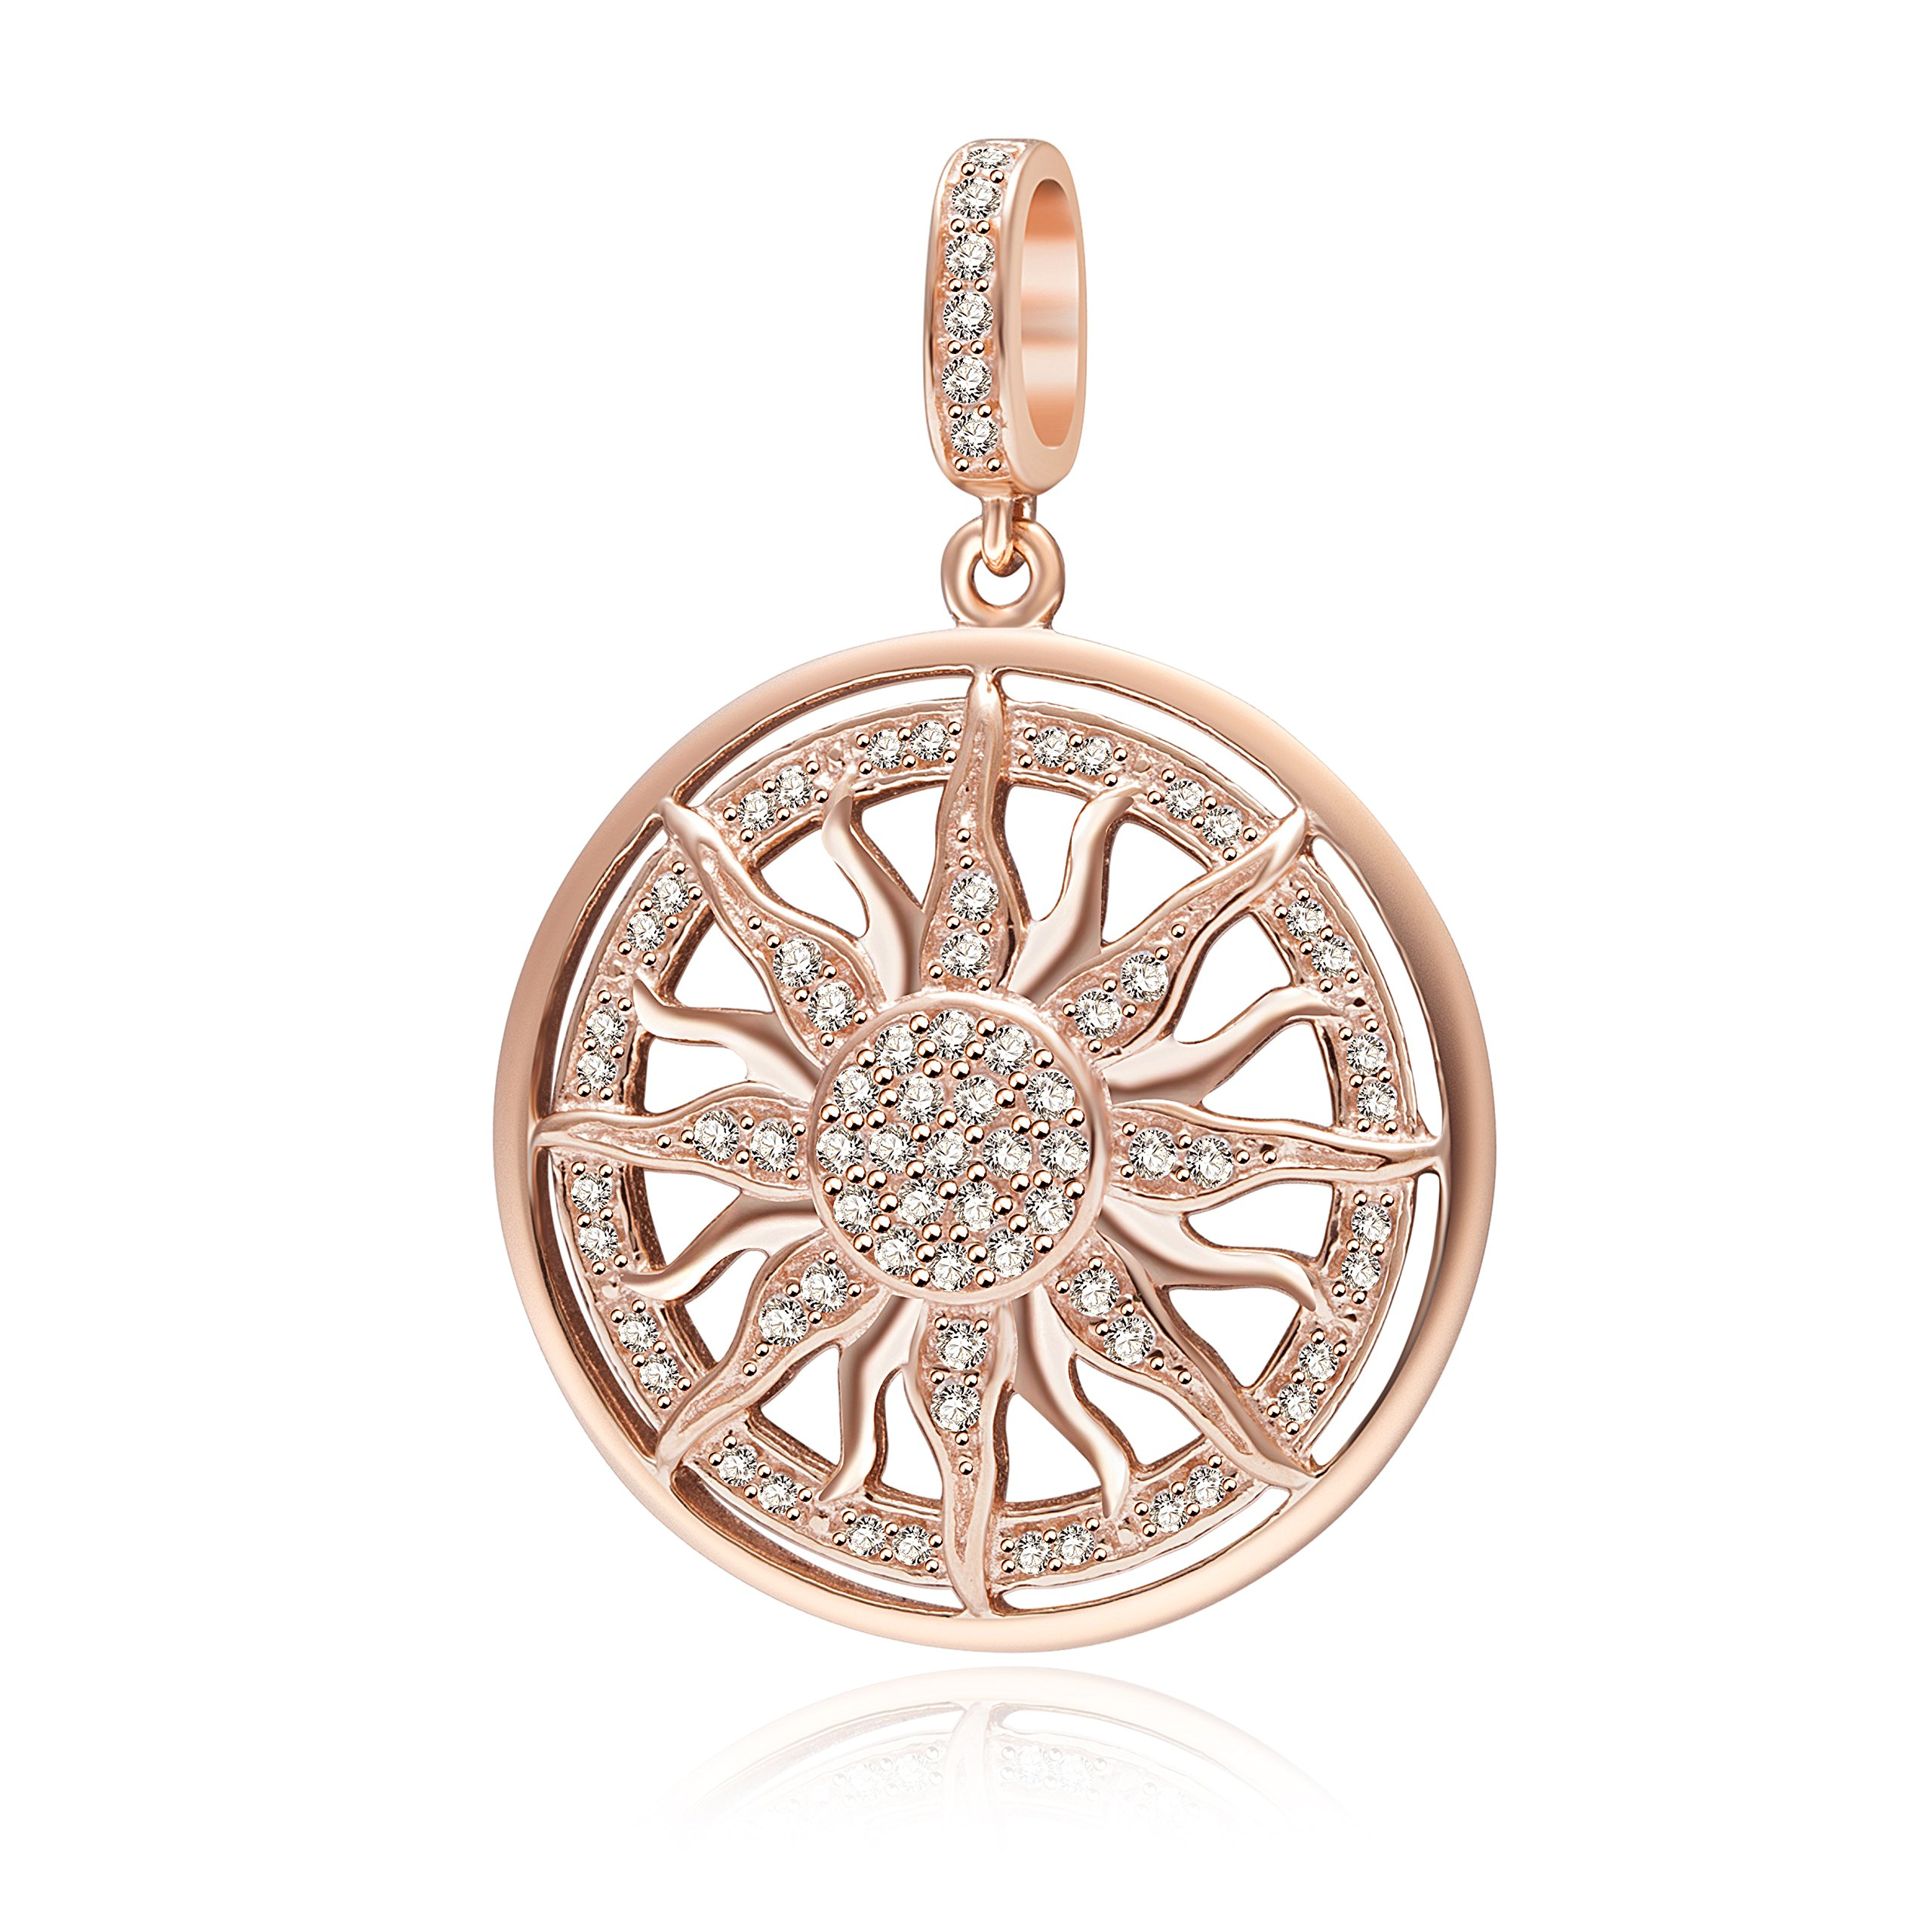 Rose Gold Sun Charms 925 Sterling Silver Dangle Charms with Clear CZ for 3mm Snake Chain Bracelet by Paiyuan charms (Image #1)